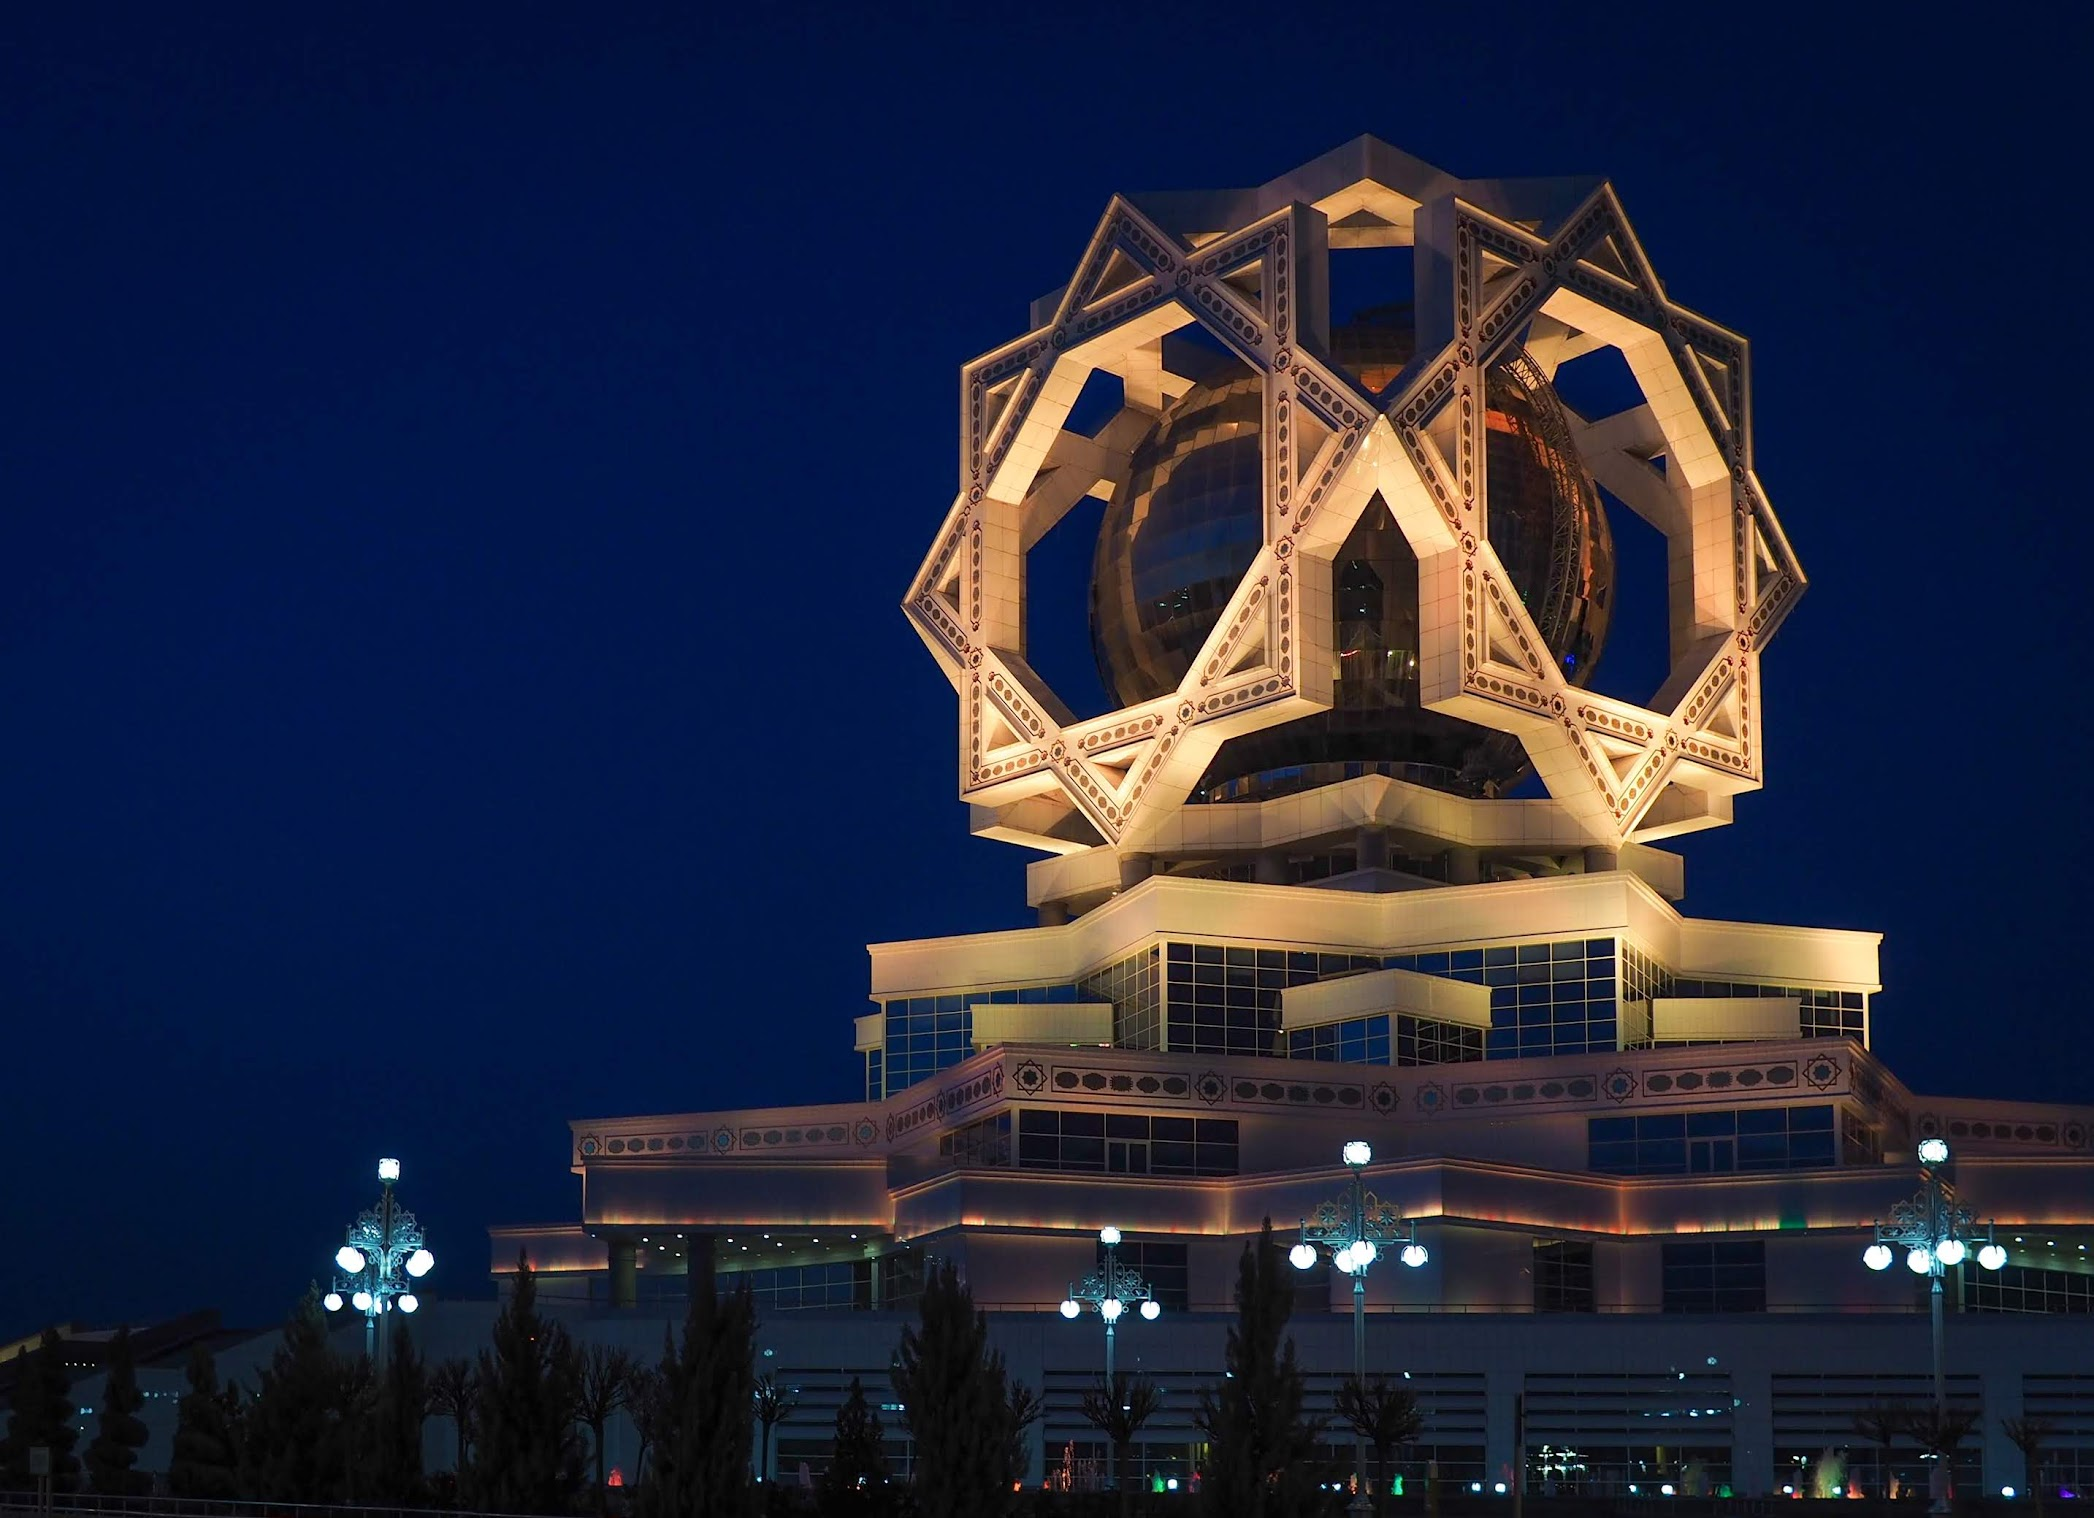 The Wedding Palace in Ashgabat.